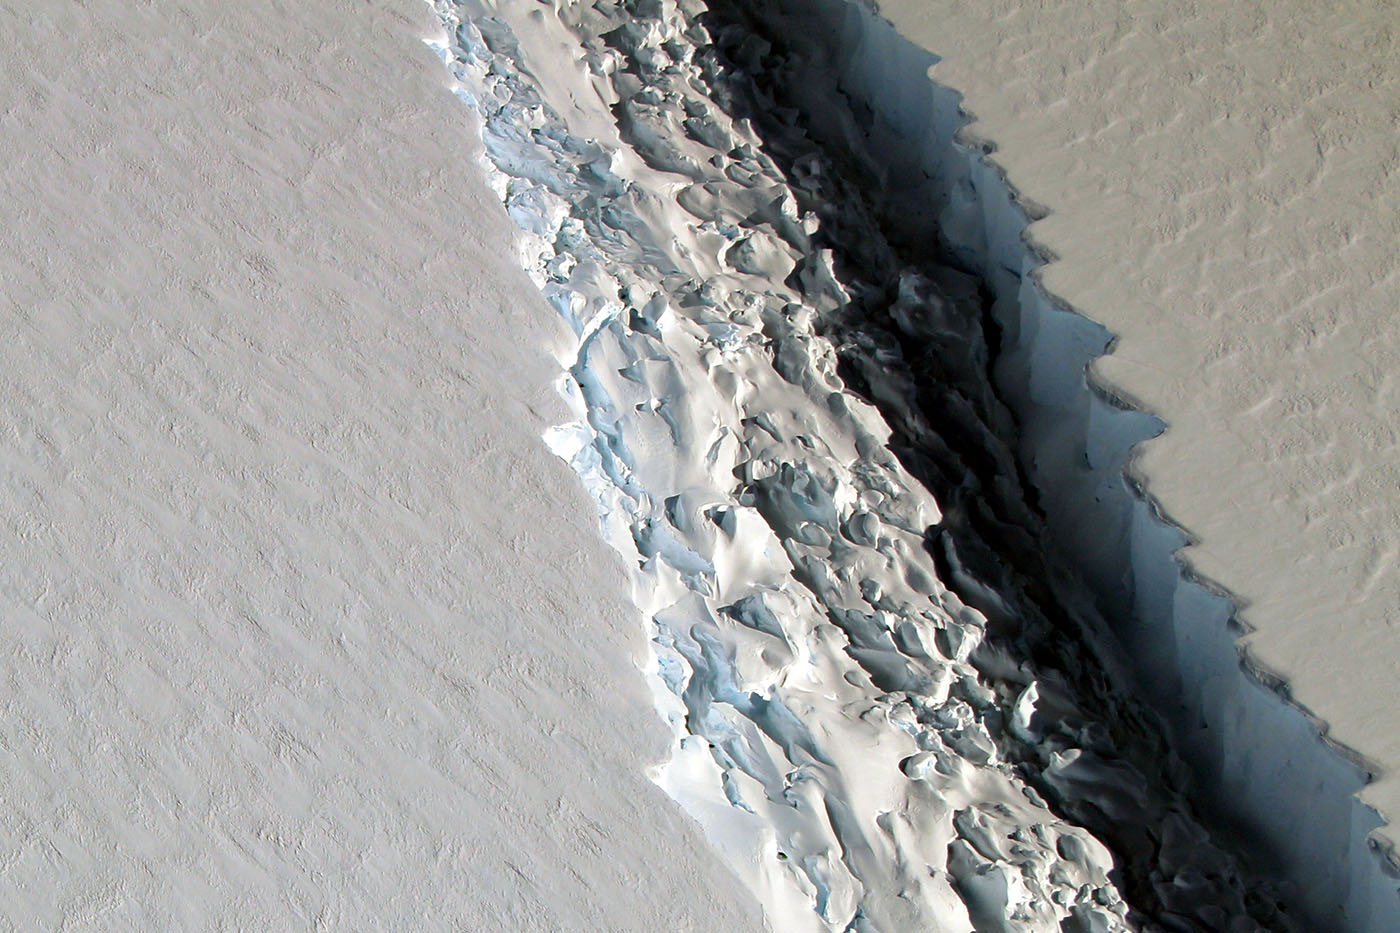 Colossal (and Growing) Crack in Antarctic Ice Shelf Seen in New Video